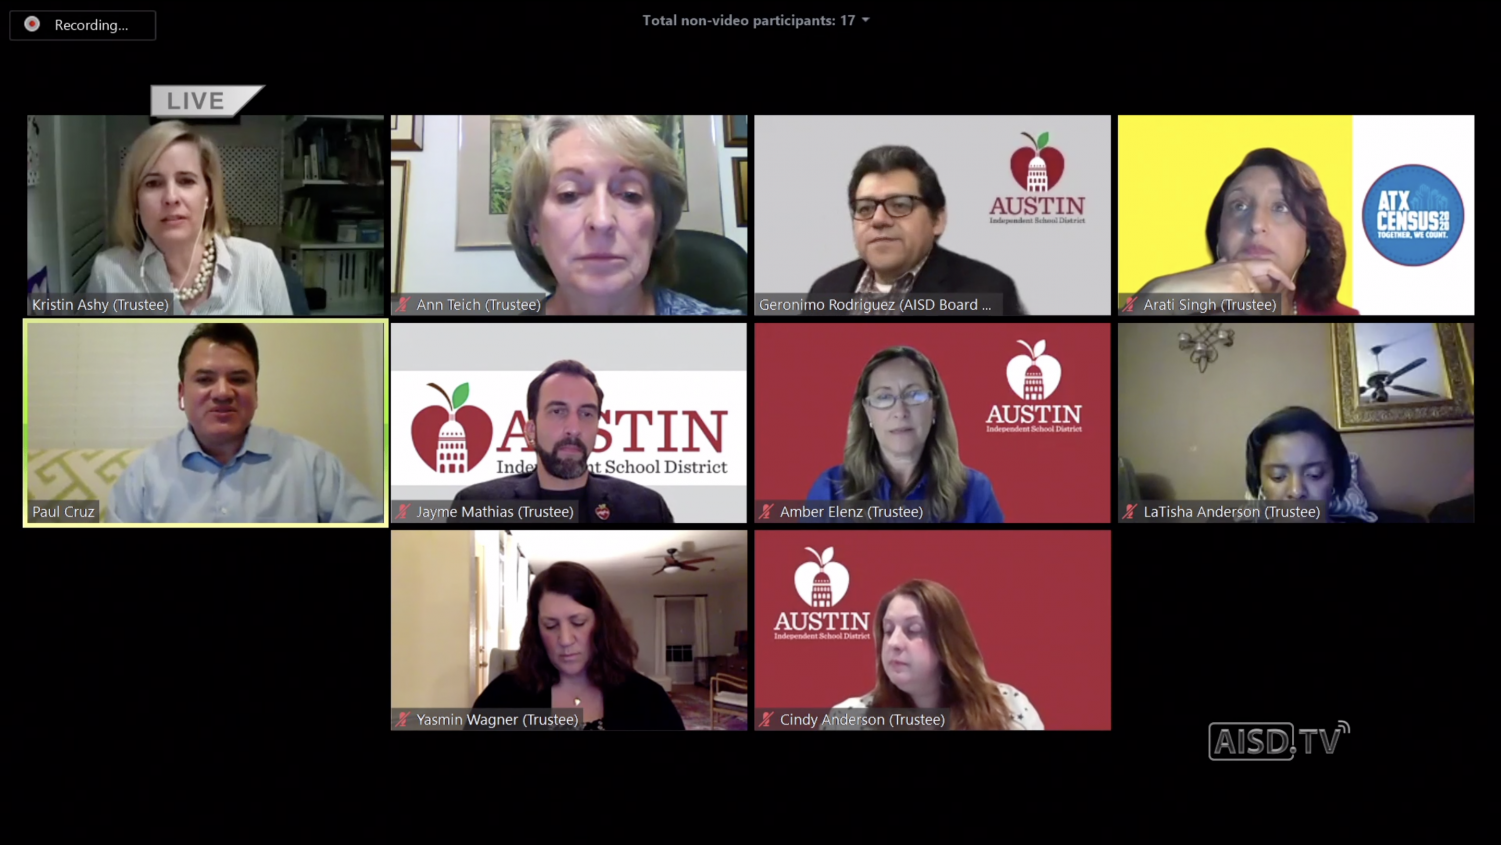 The+Austin+Independent+School+District+%28AISD%29+board+hosted+an+online+meeting+Monday%2C+April+6+to+discuss+the+future+of+AISD+students+while+learning+online.+The+AISD+board+decided+the+Spring+semester+of+the+2020+school+year+will+not+be+used+as+a+part+of+future+GPA+or+rank+calculations.